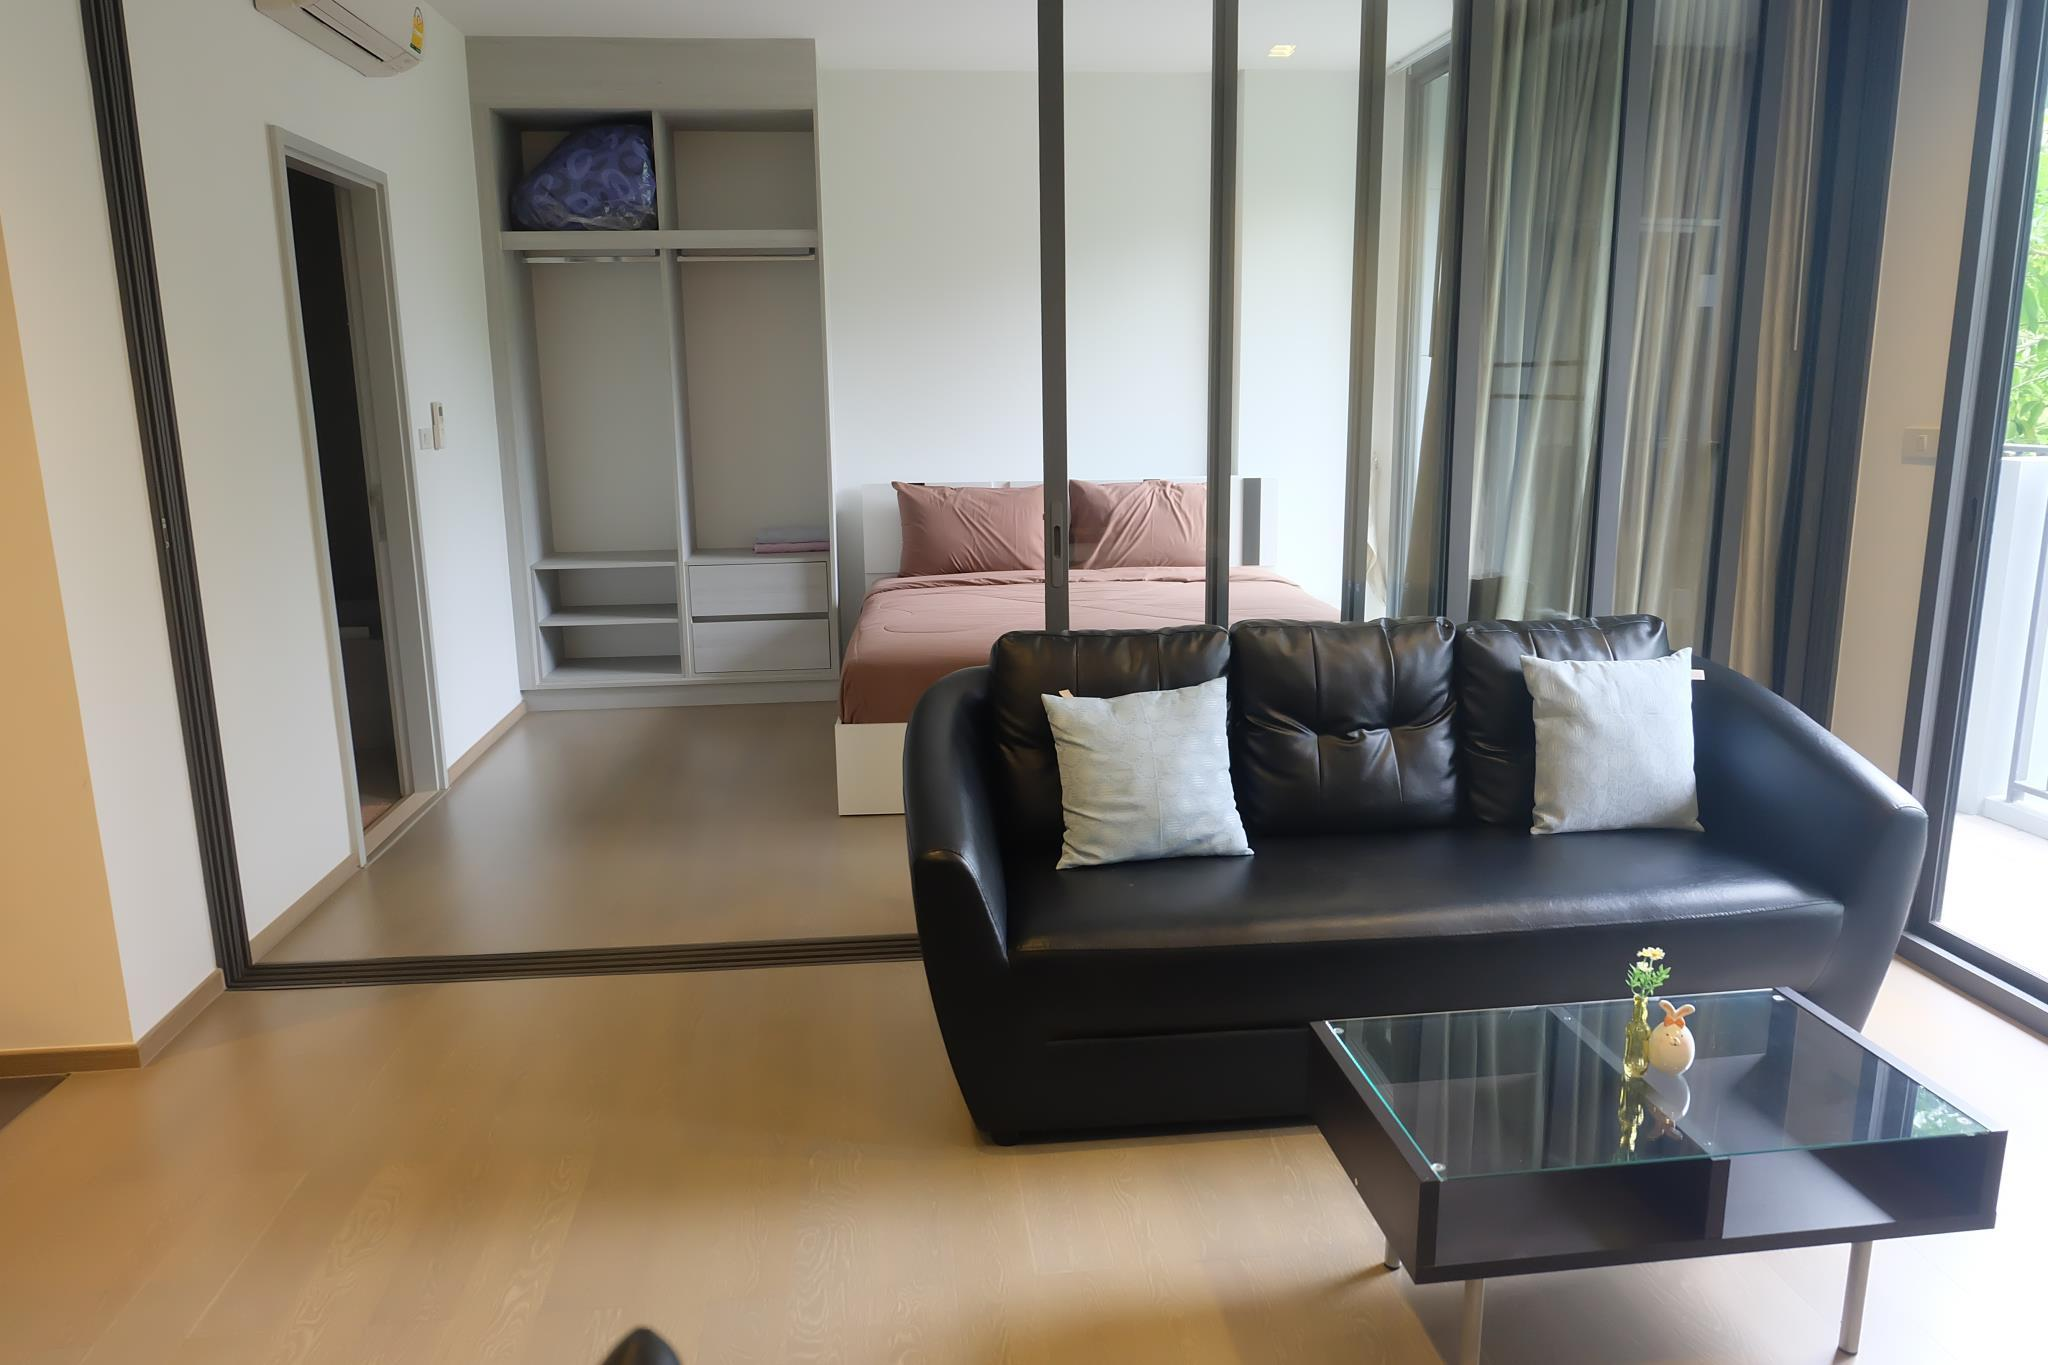 Review The Valley Khaoyai by CozyJourney